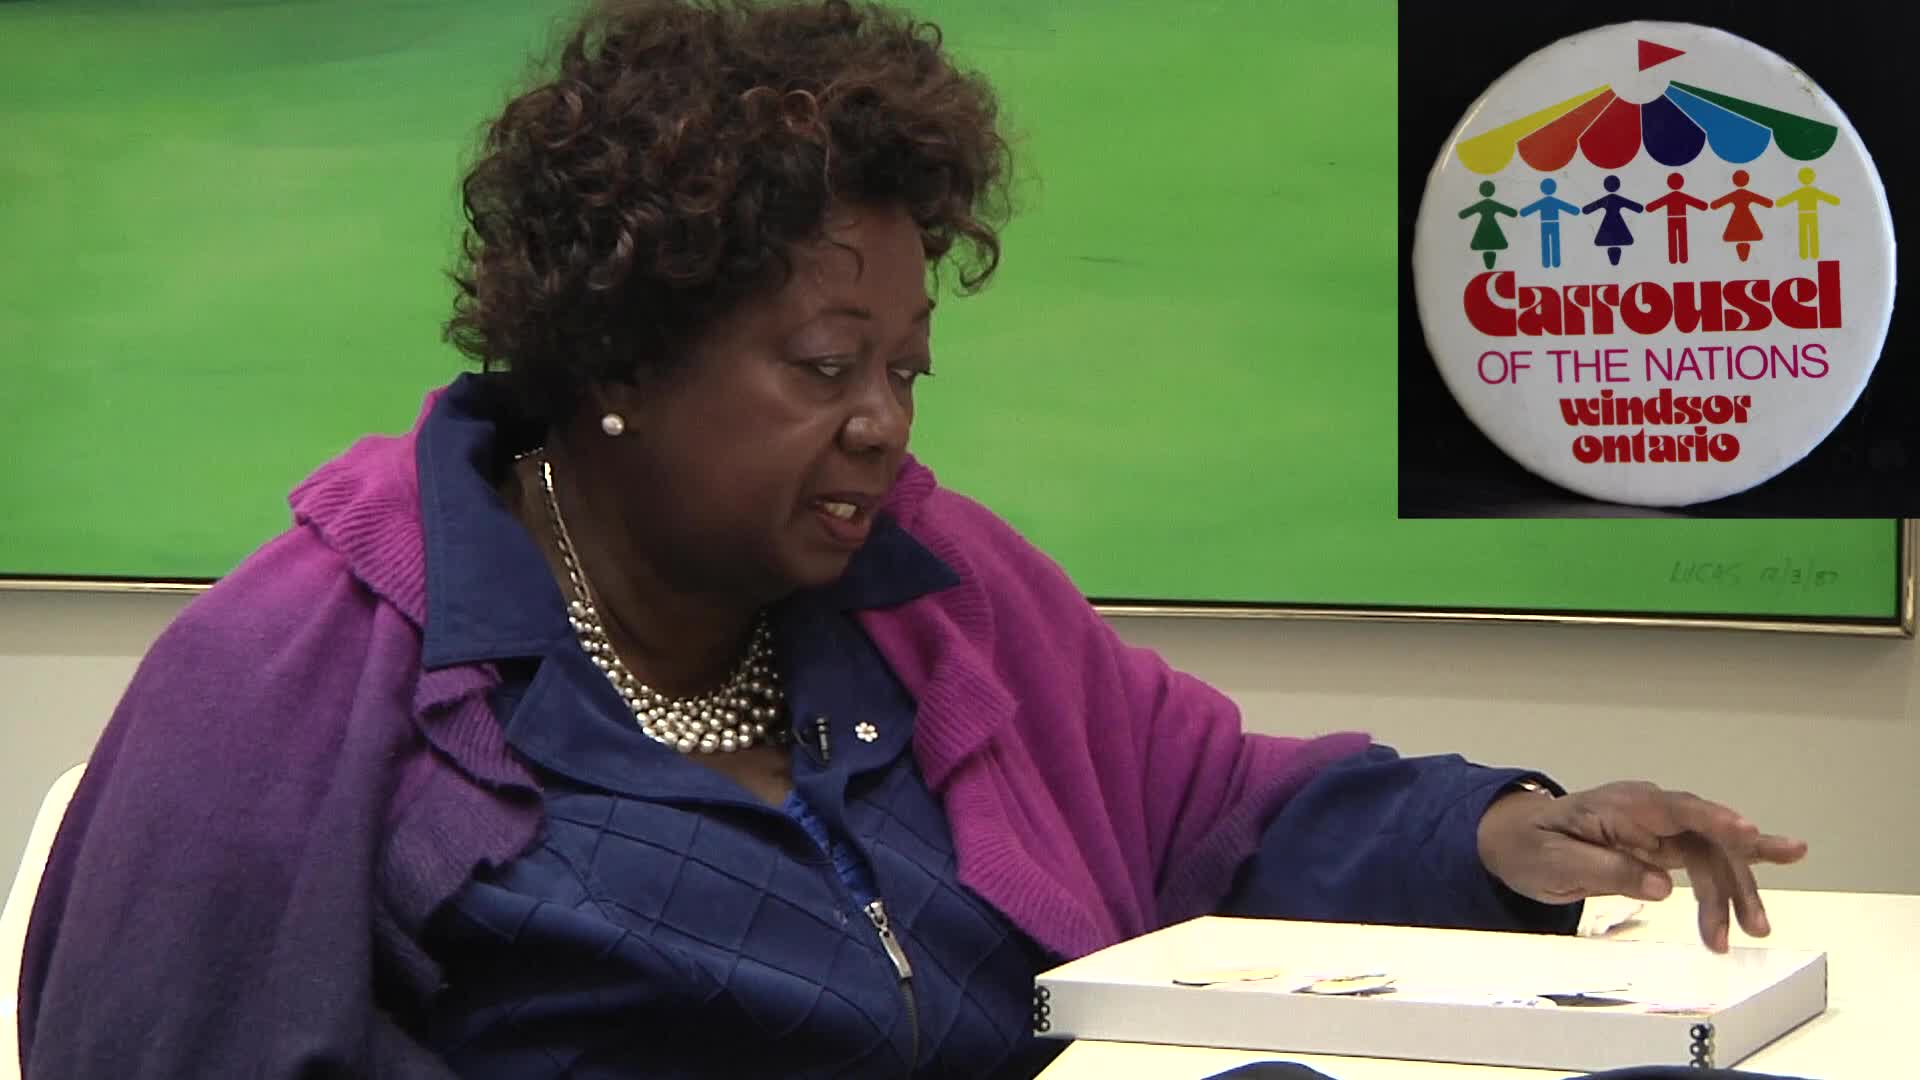 Jean Augustine interview: Carrousel of the Nations button